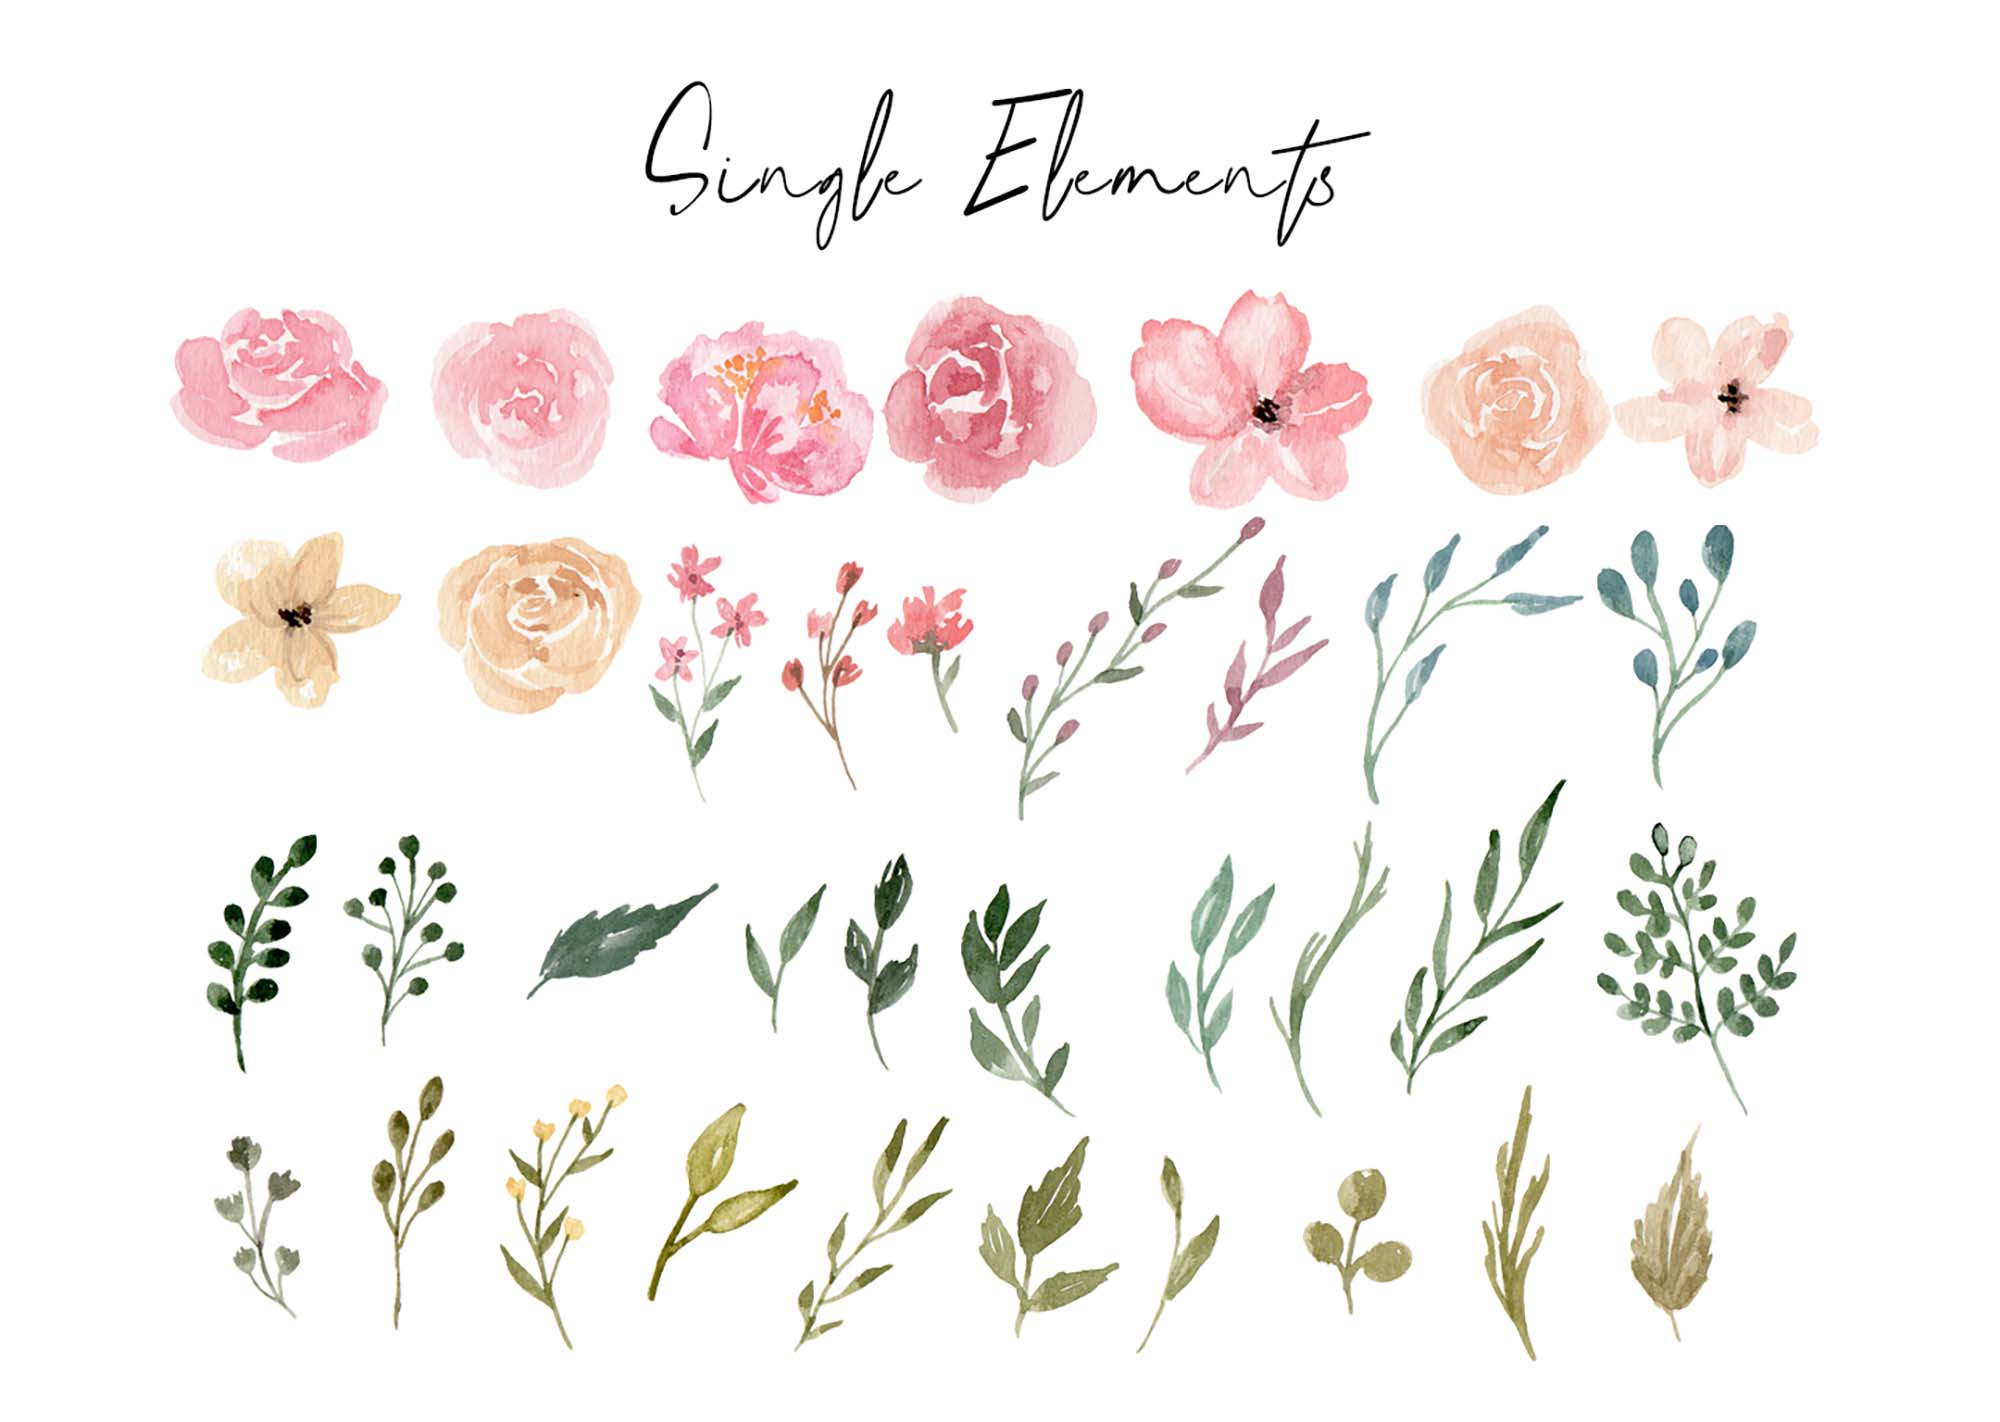 Dusty Blooms Watercolor Graphic Illustrations 6